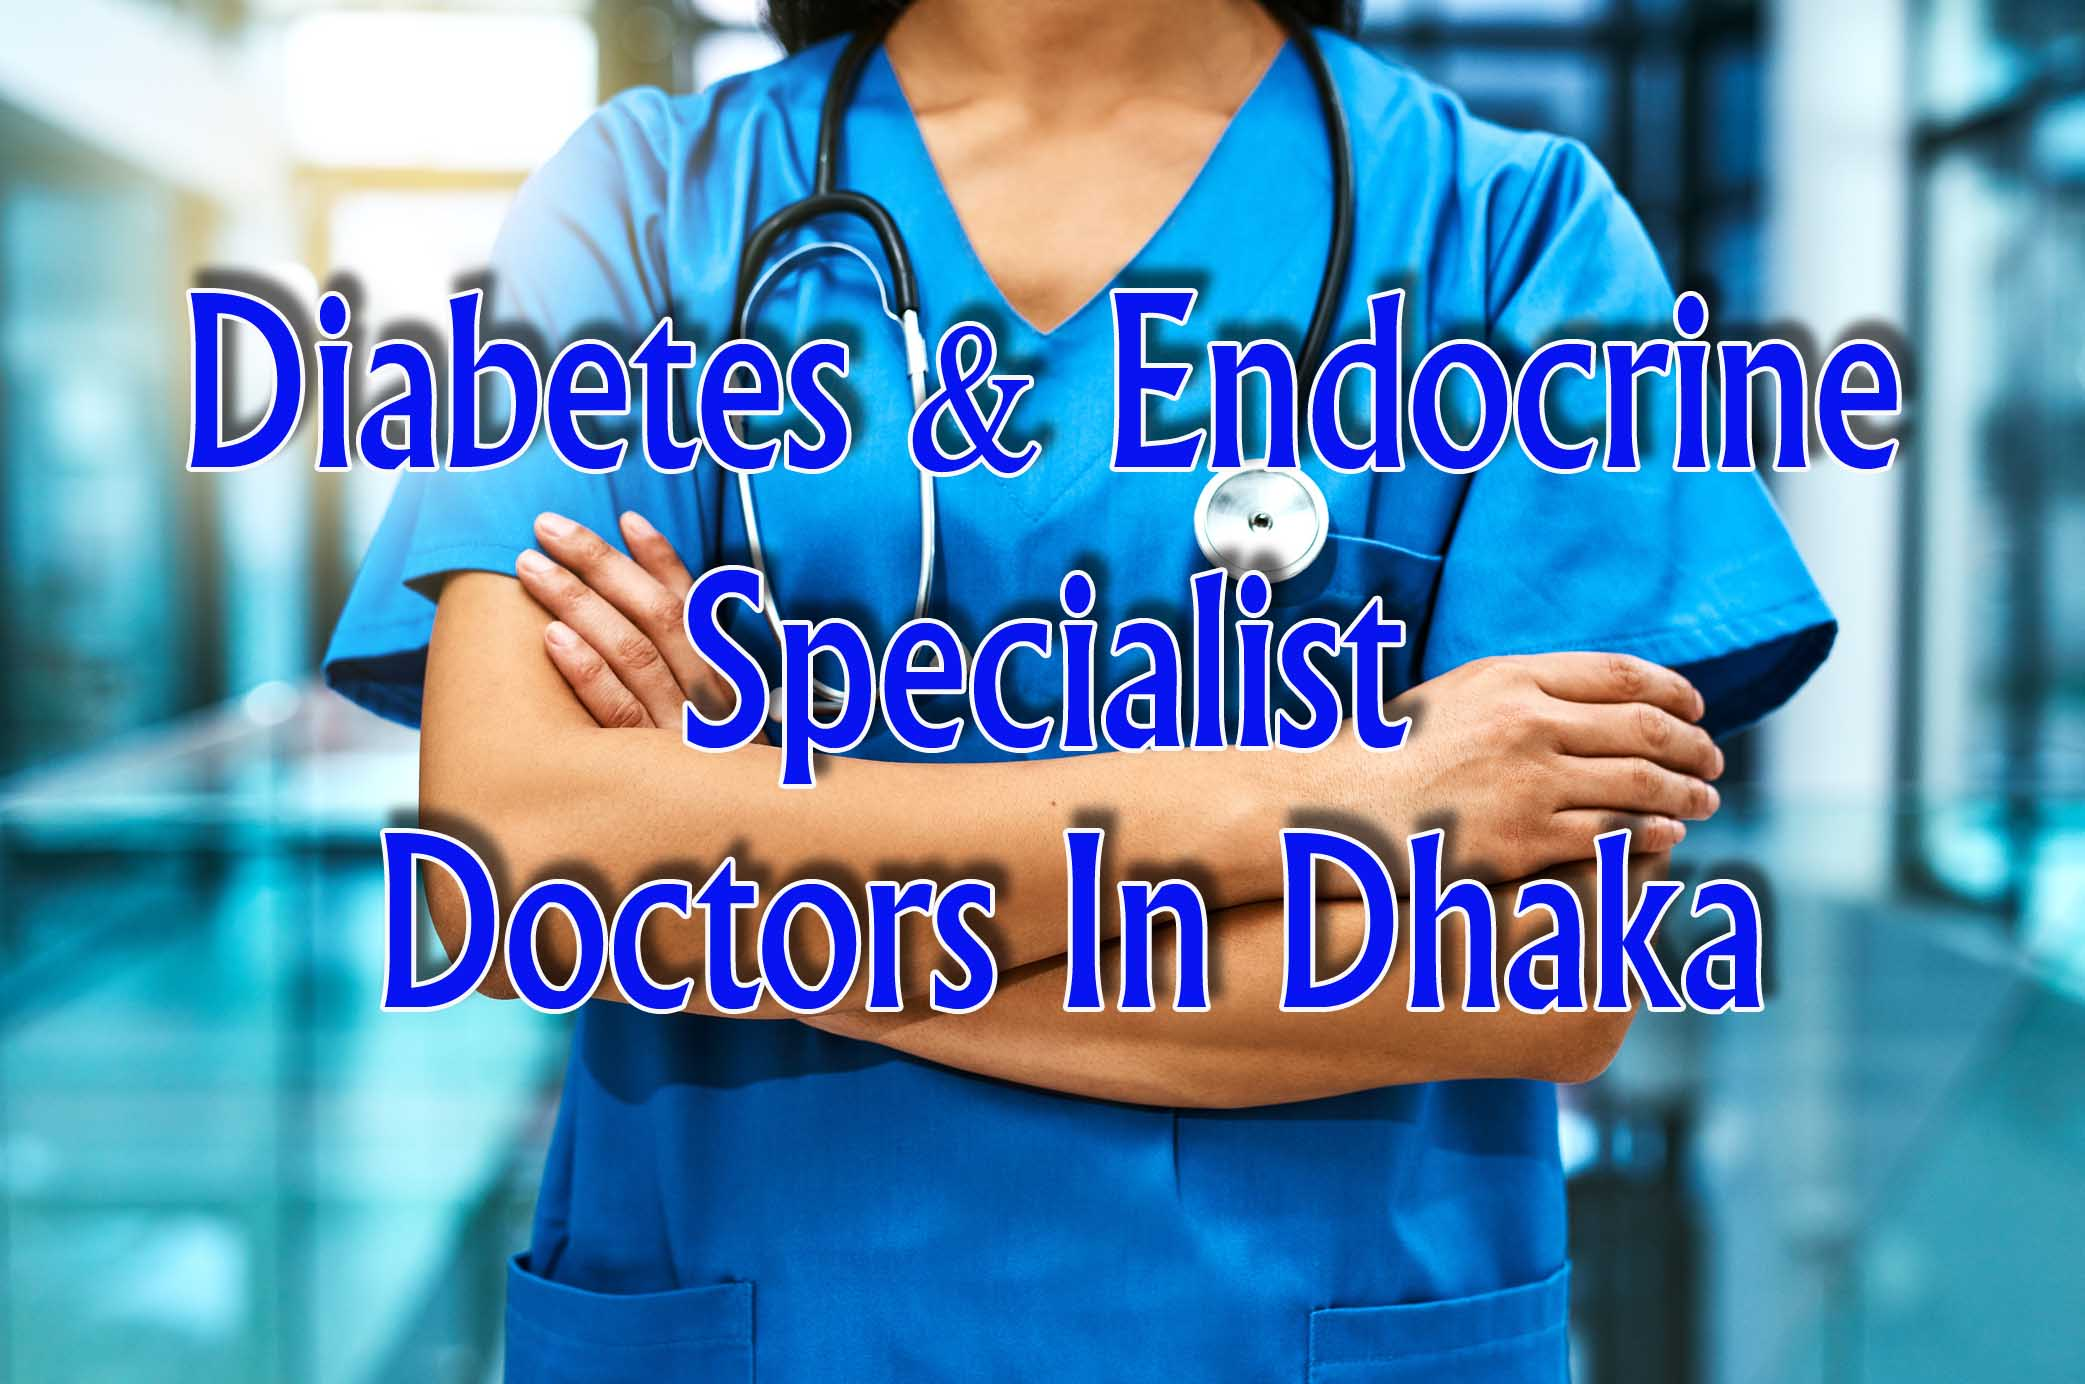 Diabetes & Endocrine Specialist Doctors List